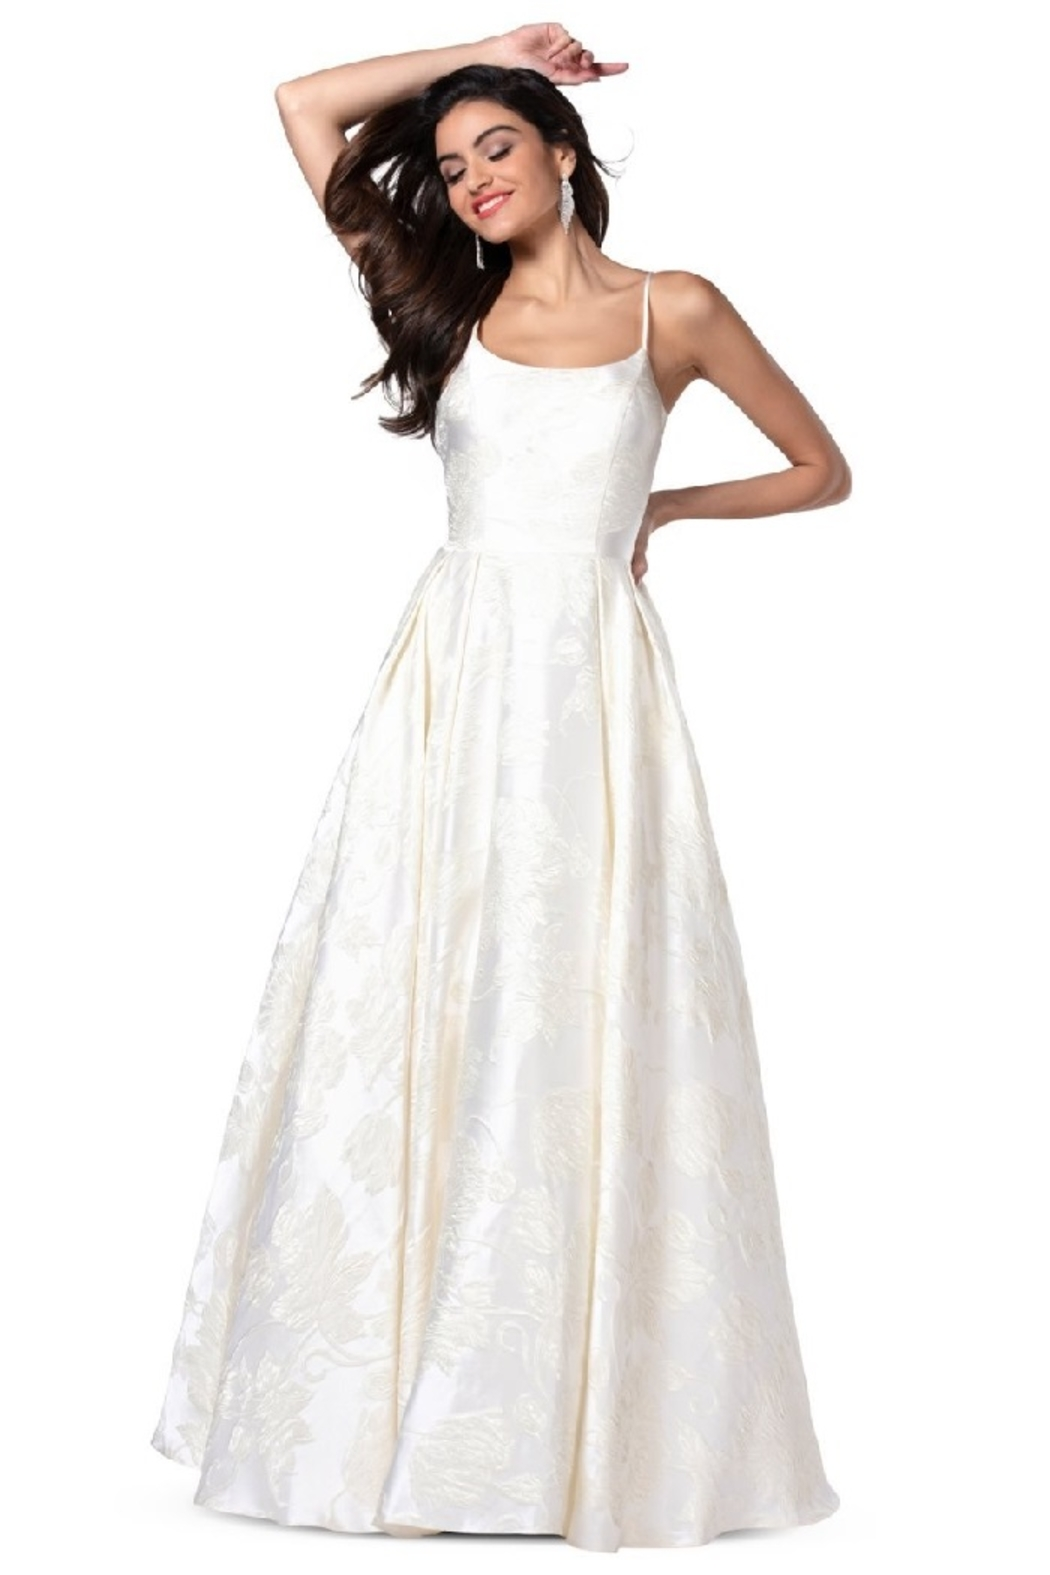 Flair New York Cream Floral Print Bridal Ballgown - Main Image